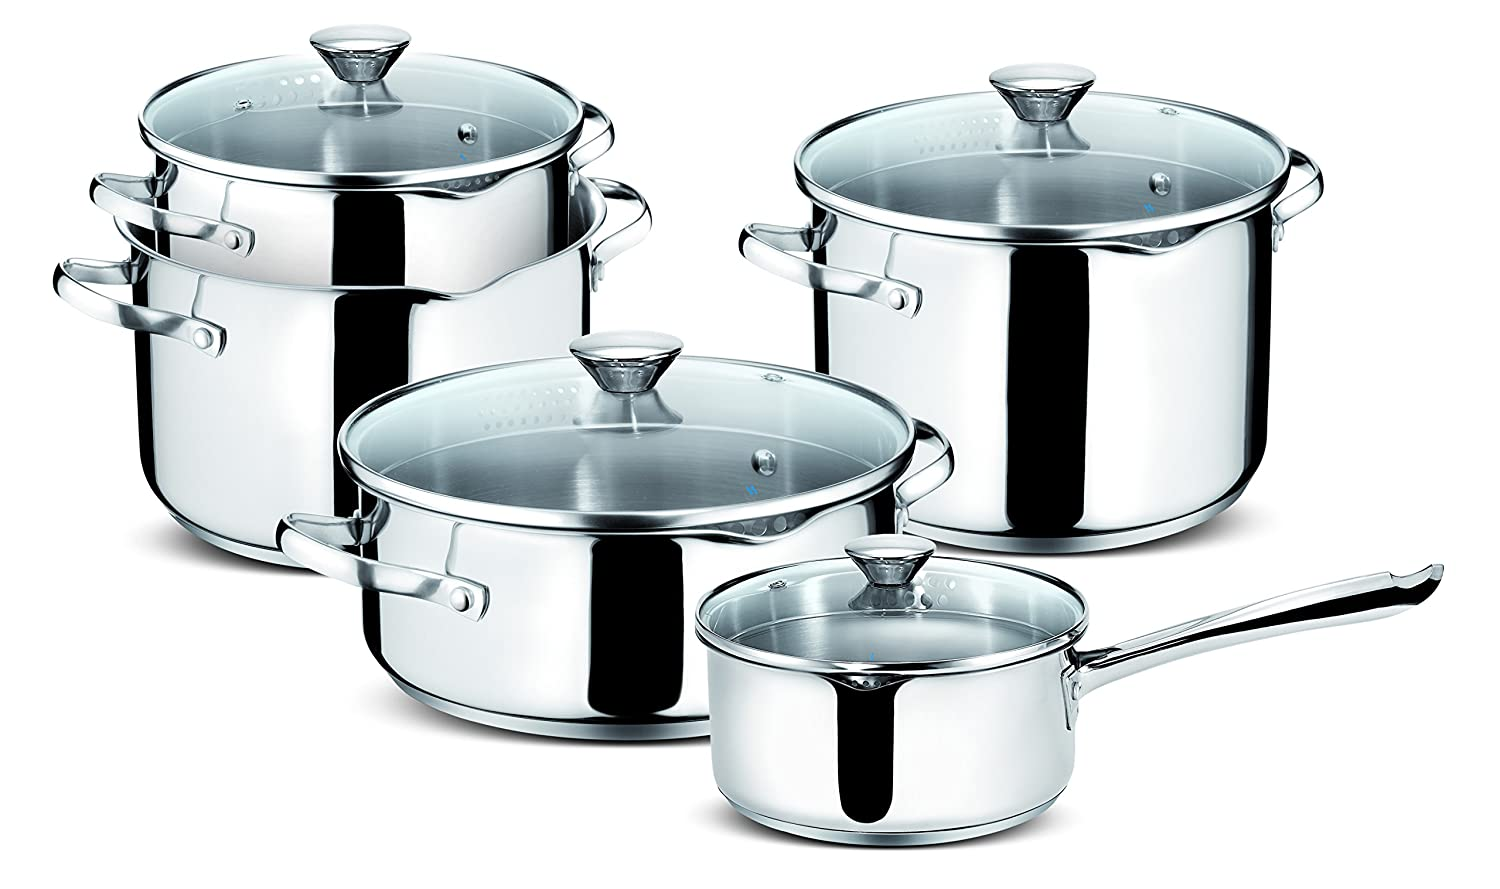 Lagostina Smart Set of Saucepans in Stainless Steel, 9 Pieces 010716600009